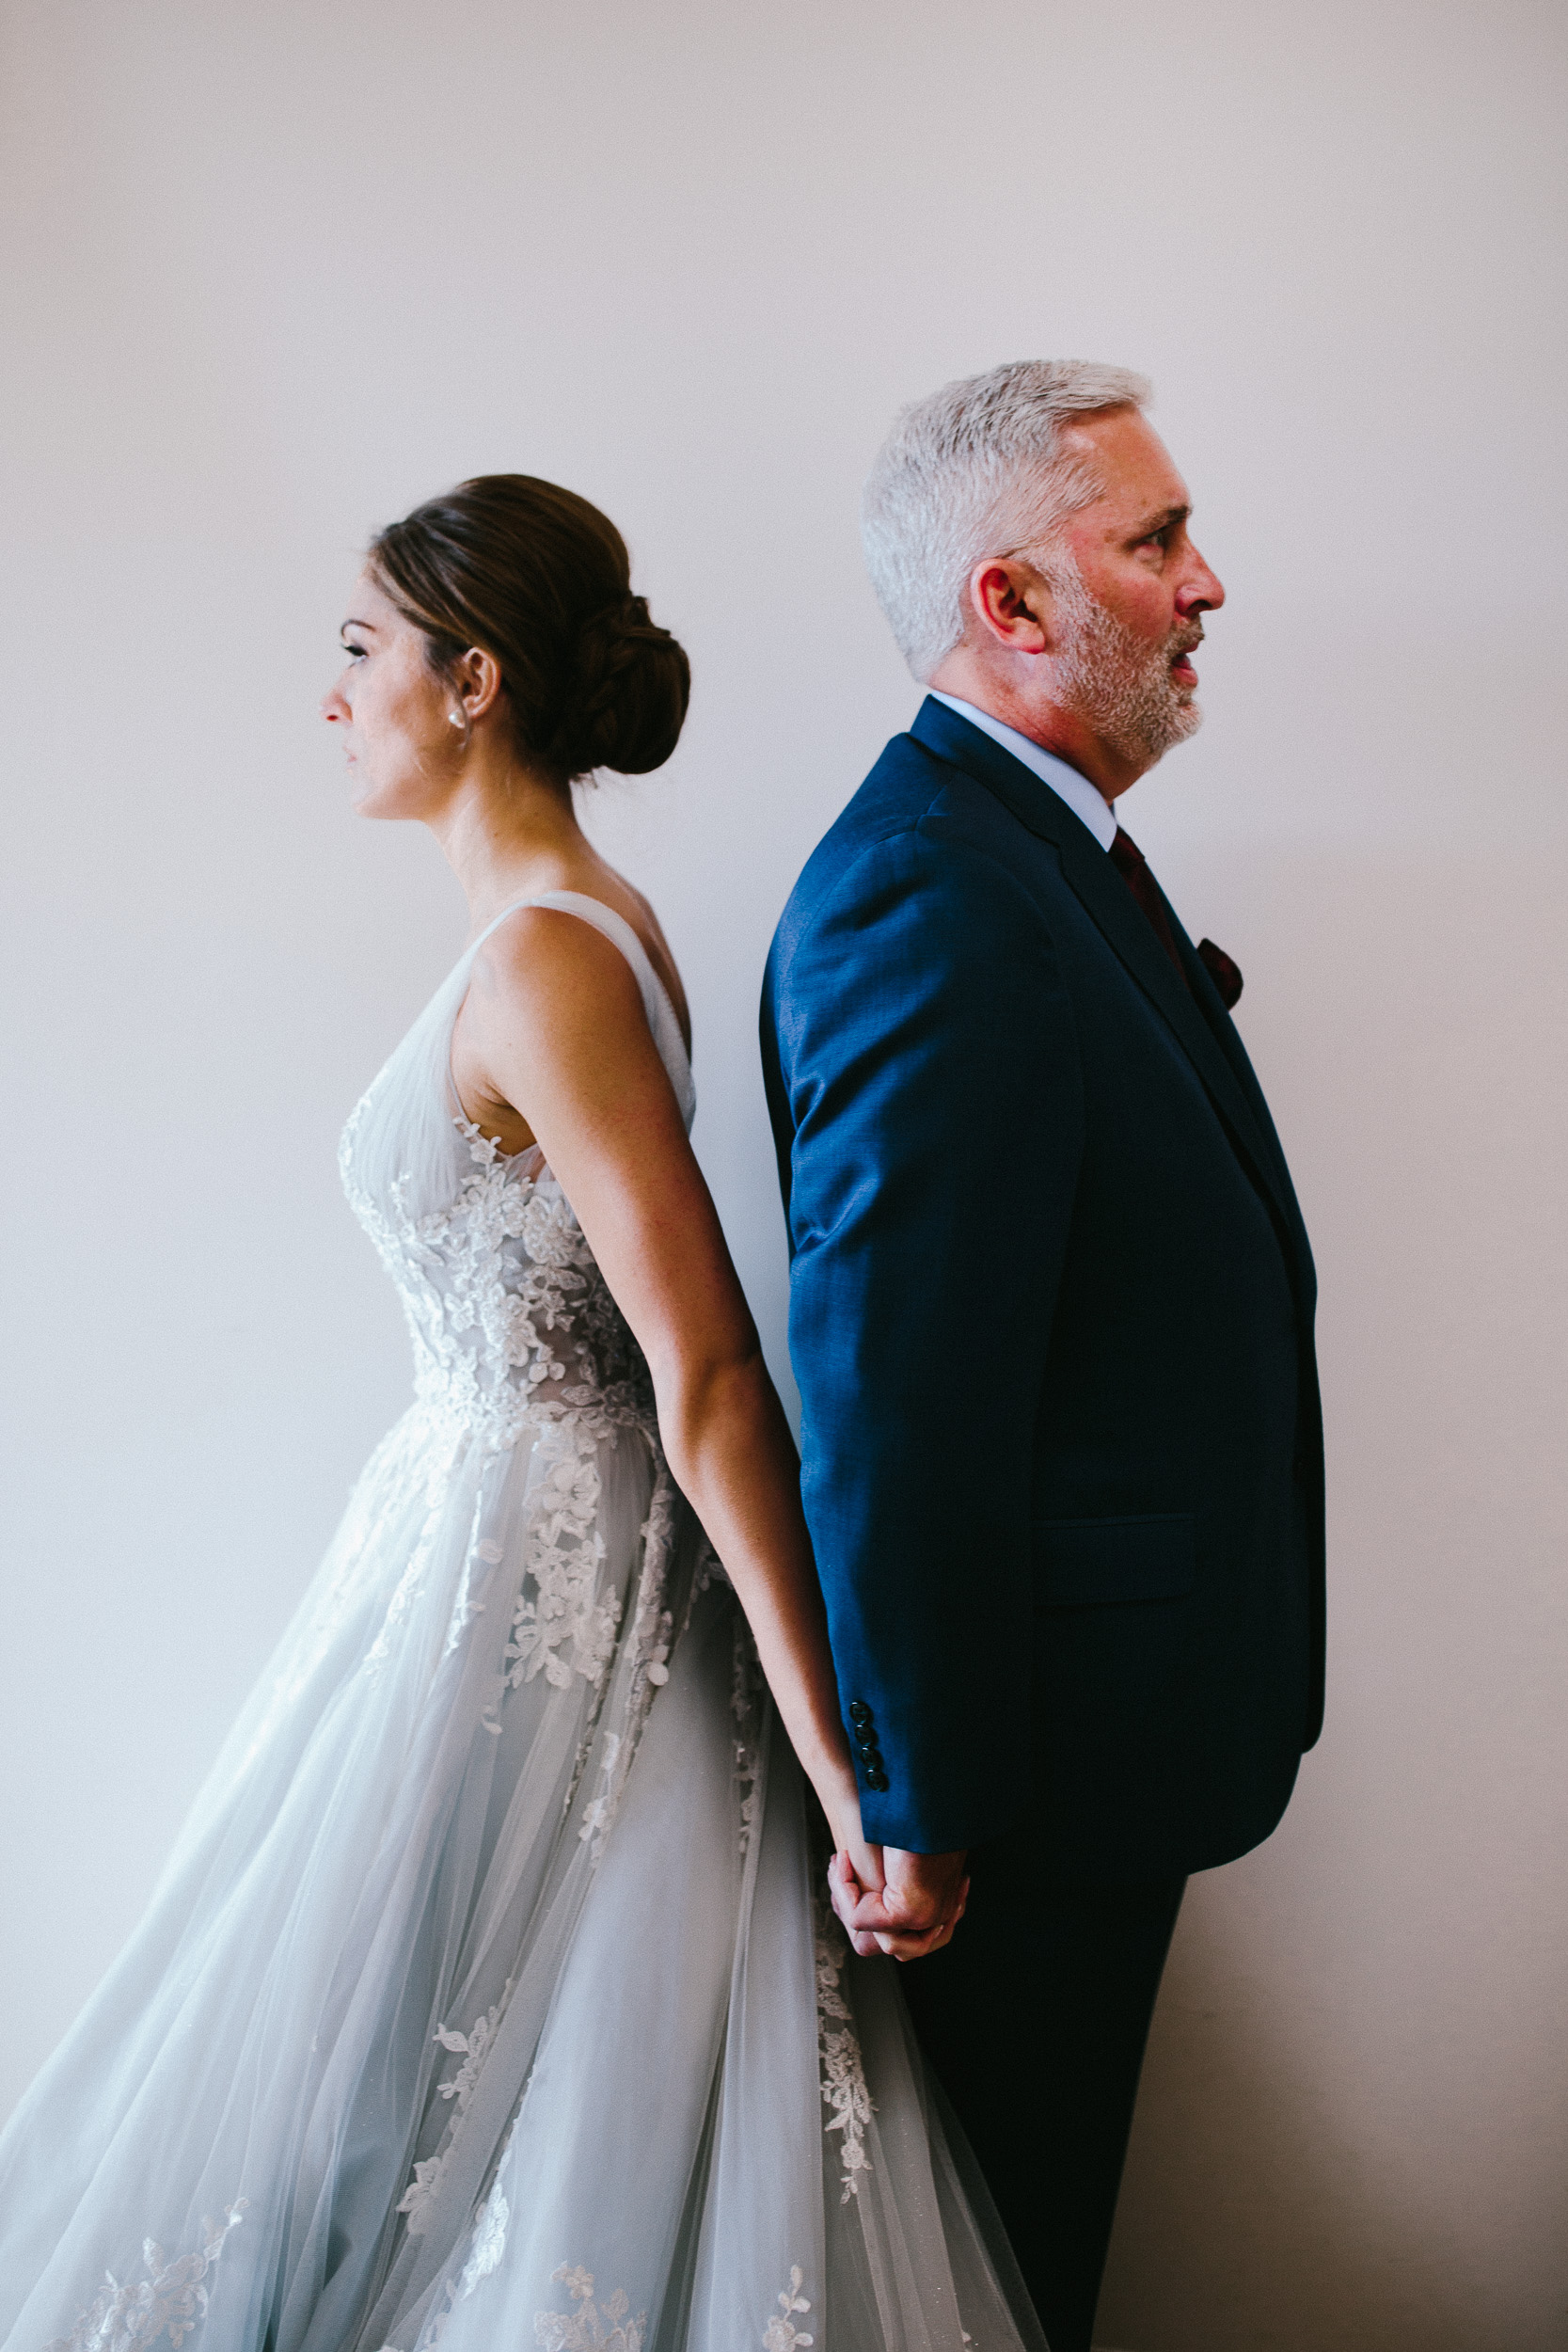 skylight denver wedding photographer14.jpg